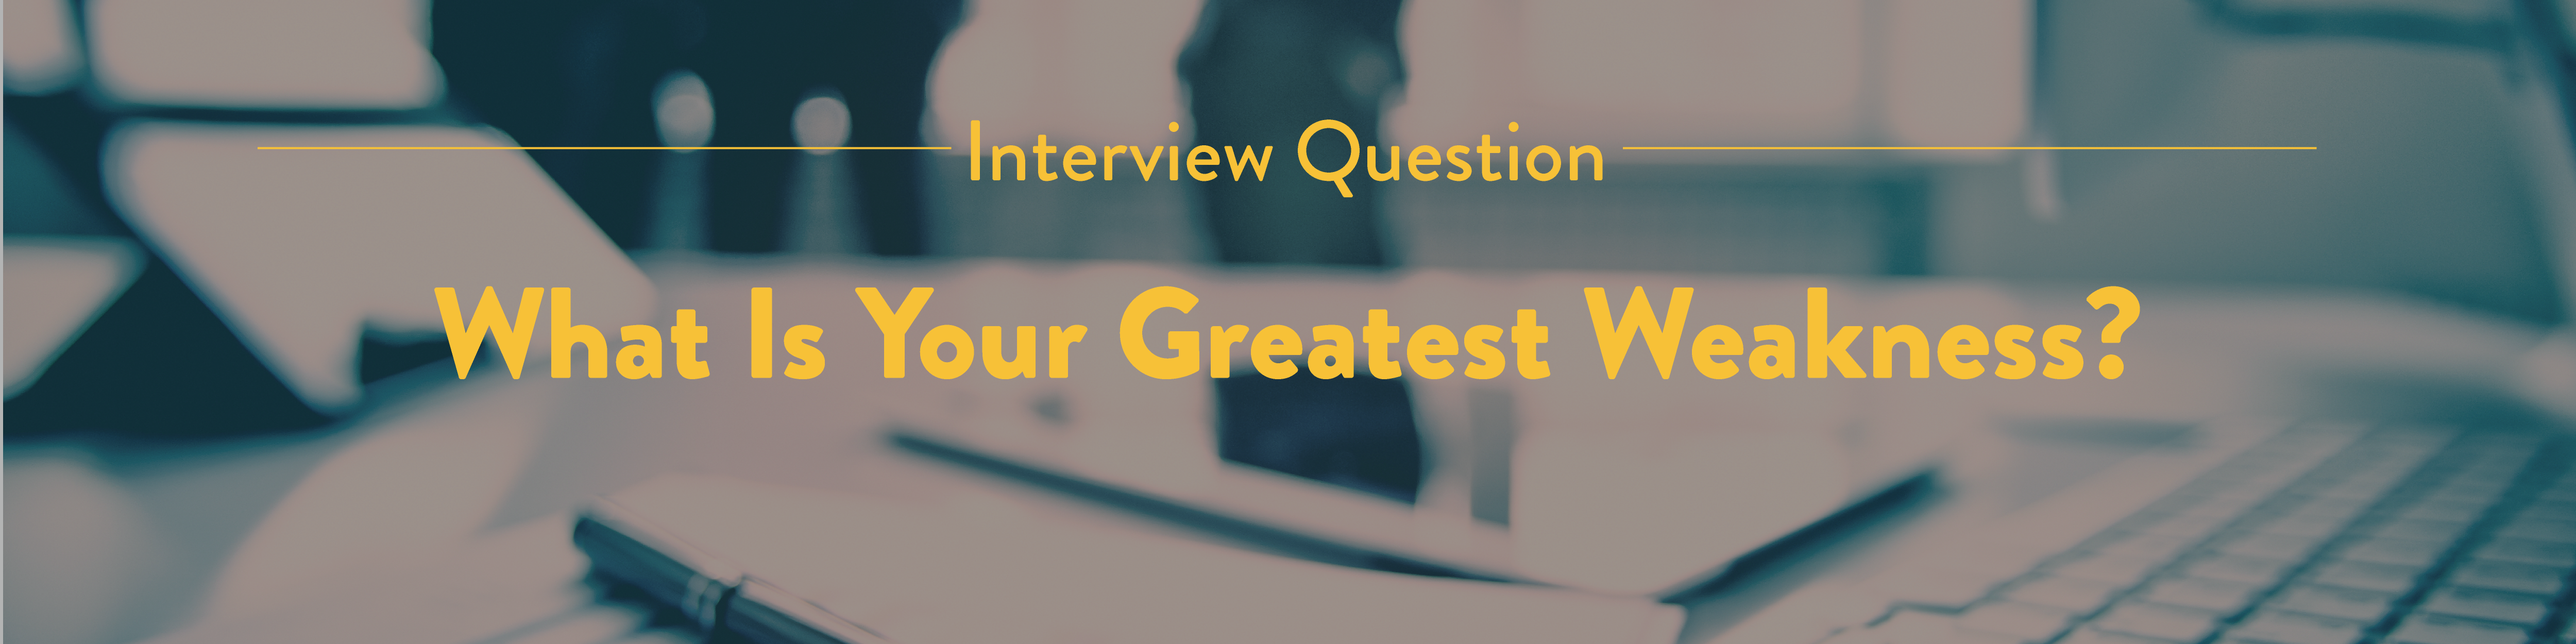 Interview 6 What Is Your Greatest Weakness Cambly Content